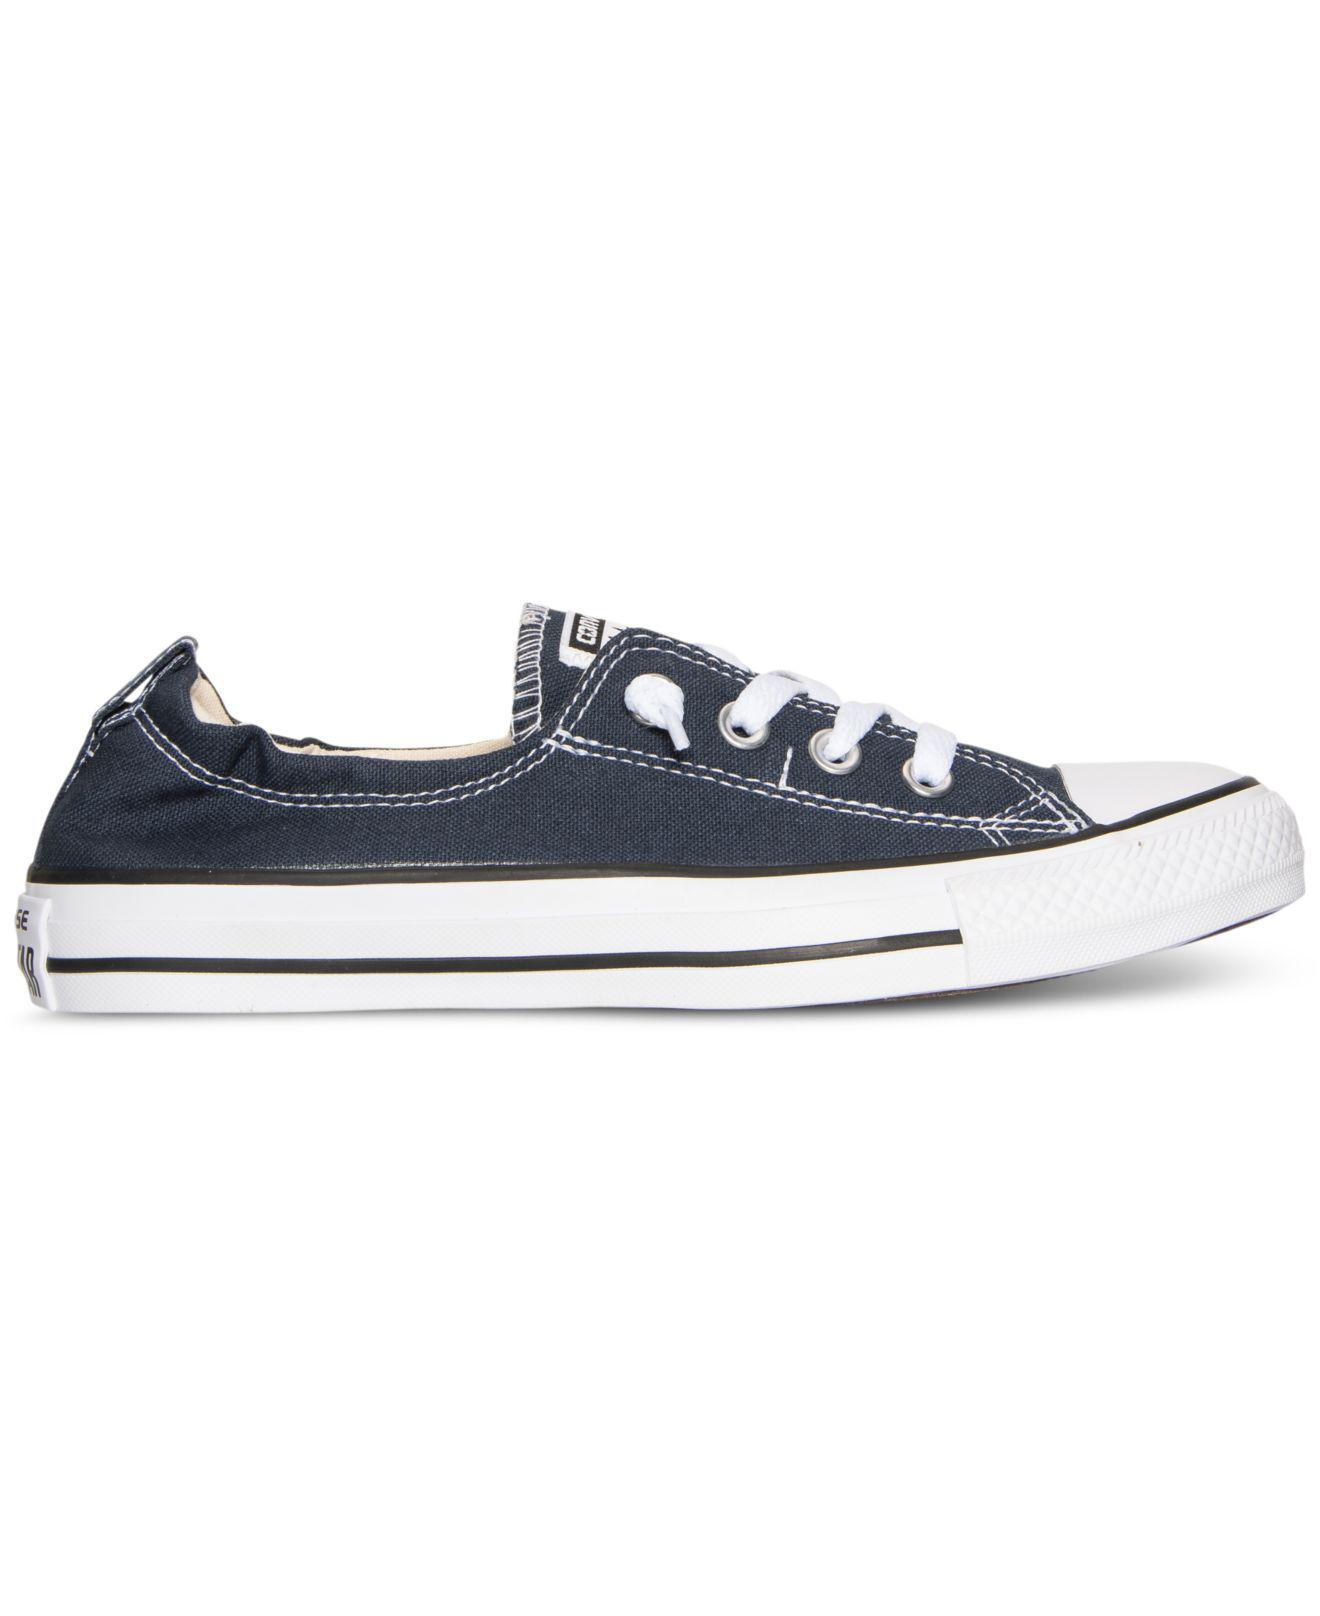 huge discount 5373e 1a48b Lyst - Converse Women s Chuck Taylor Shoreline Ox Casual Sneakers From Finish  Line in Blue